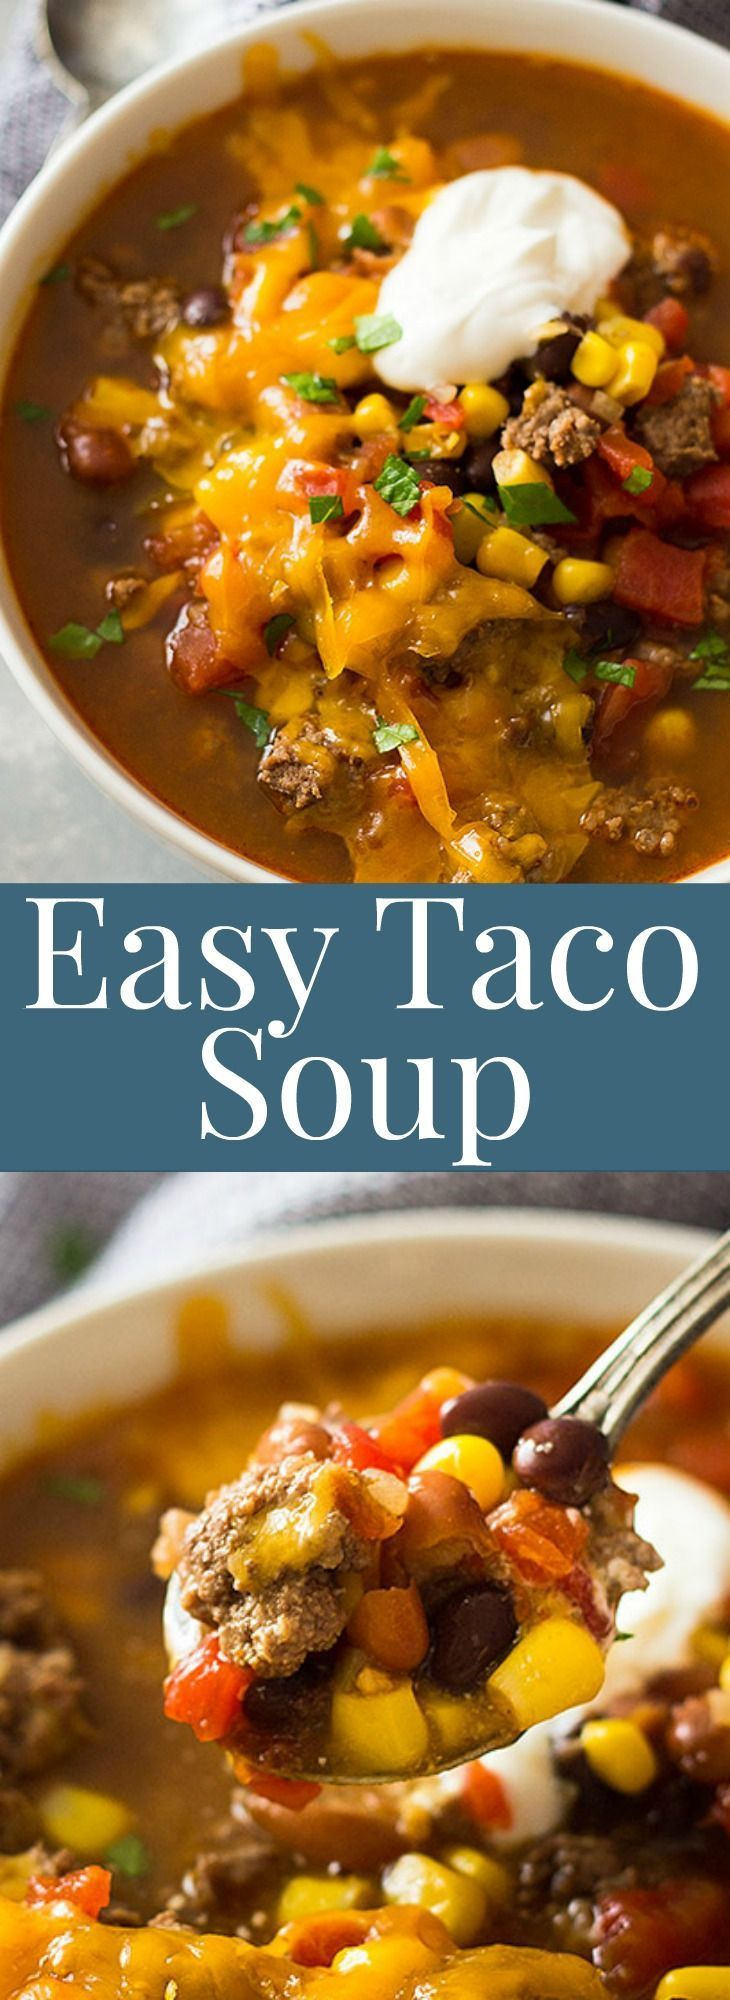 This Easy Taco Soup Is Packed With Flavor Takes Less Than